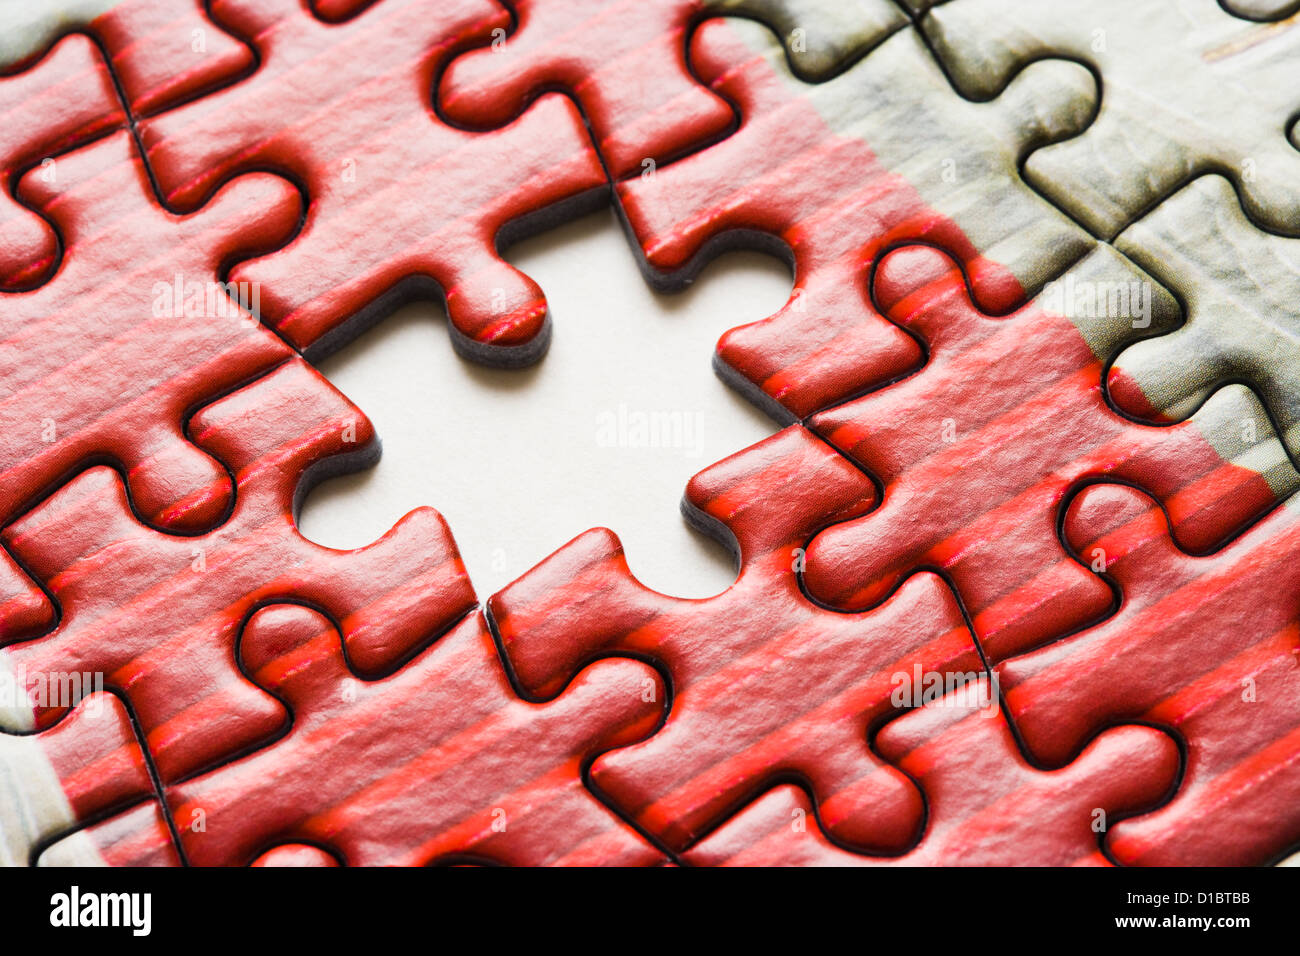 Last piece of the jigsaw. - Stock Image